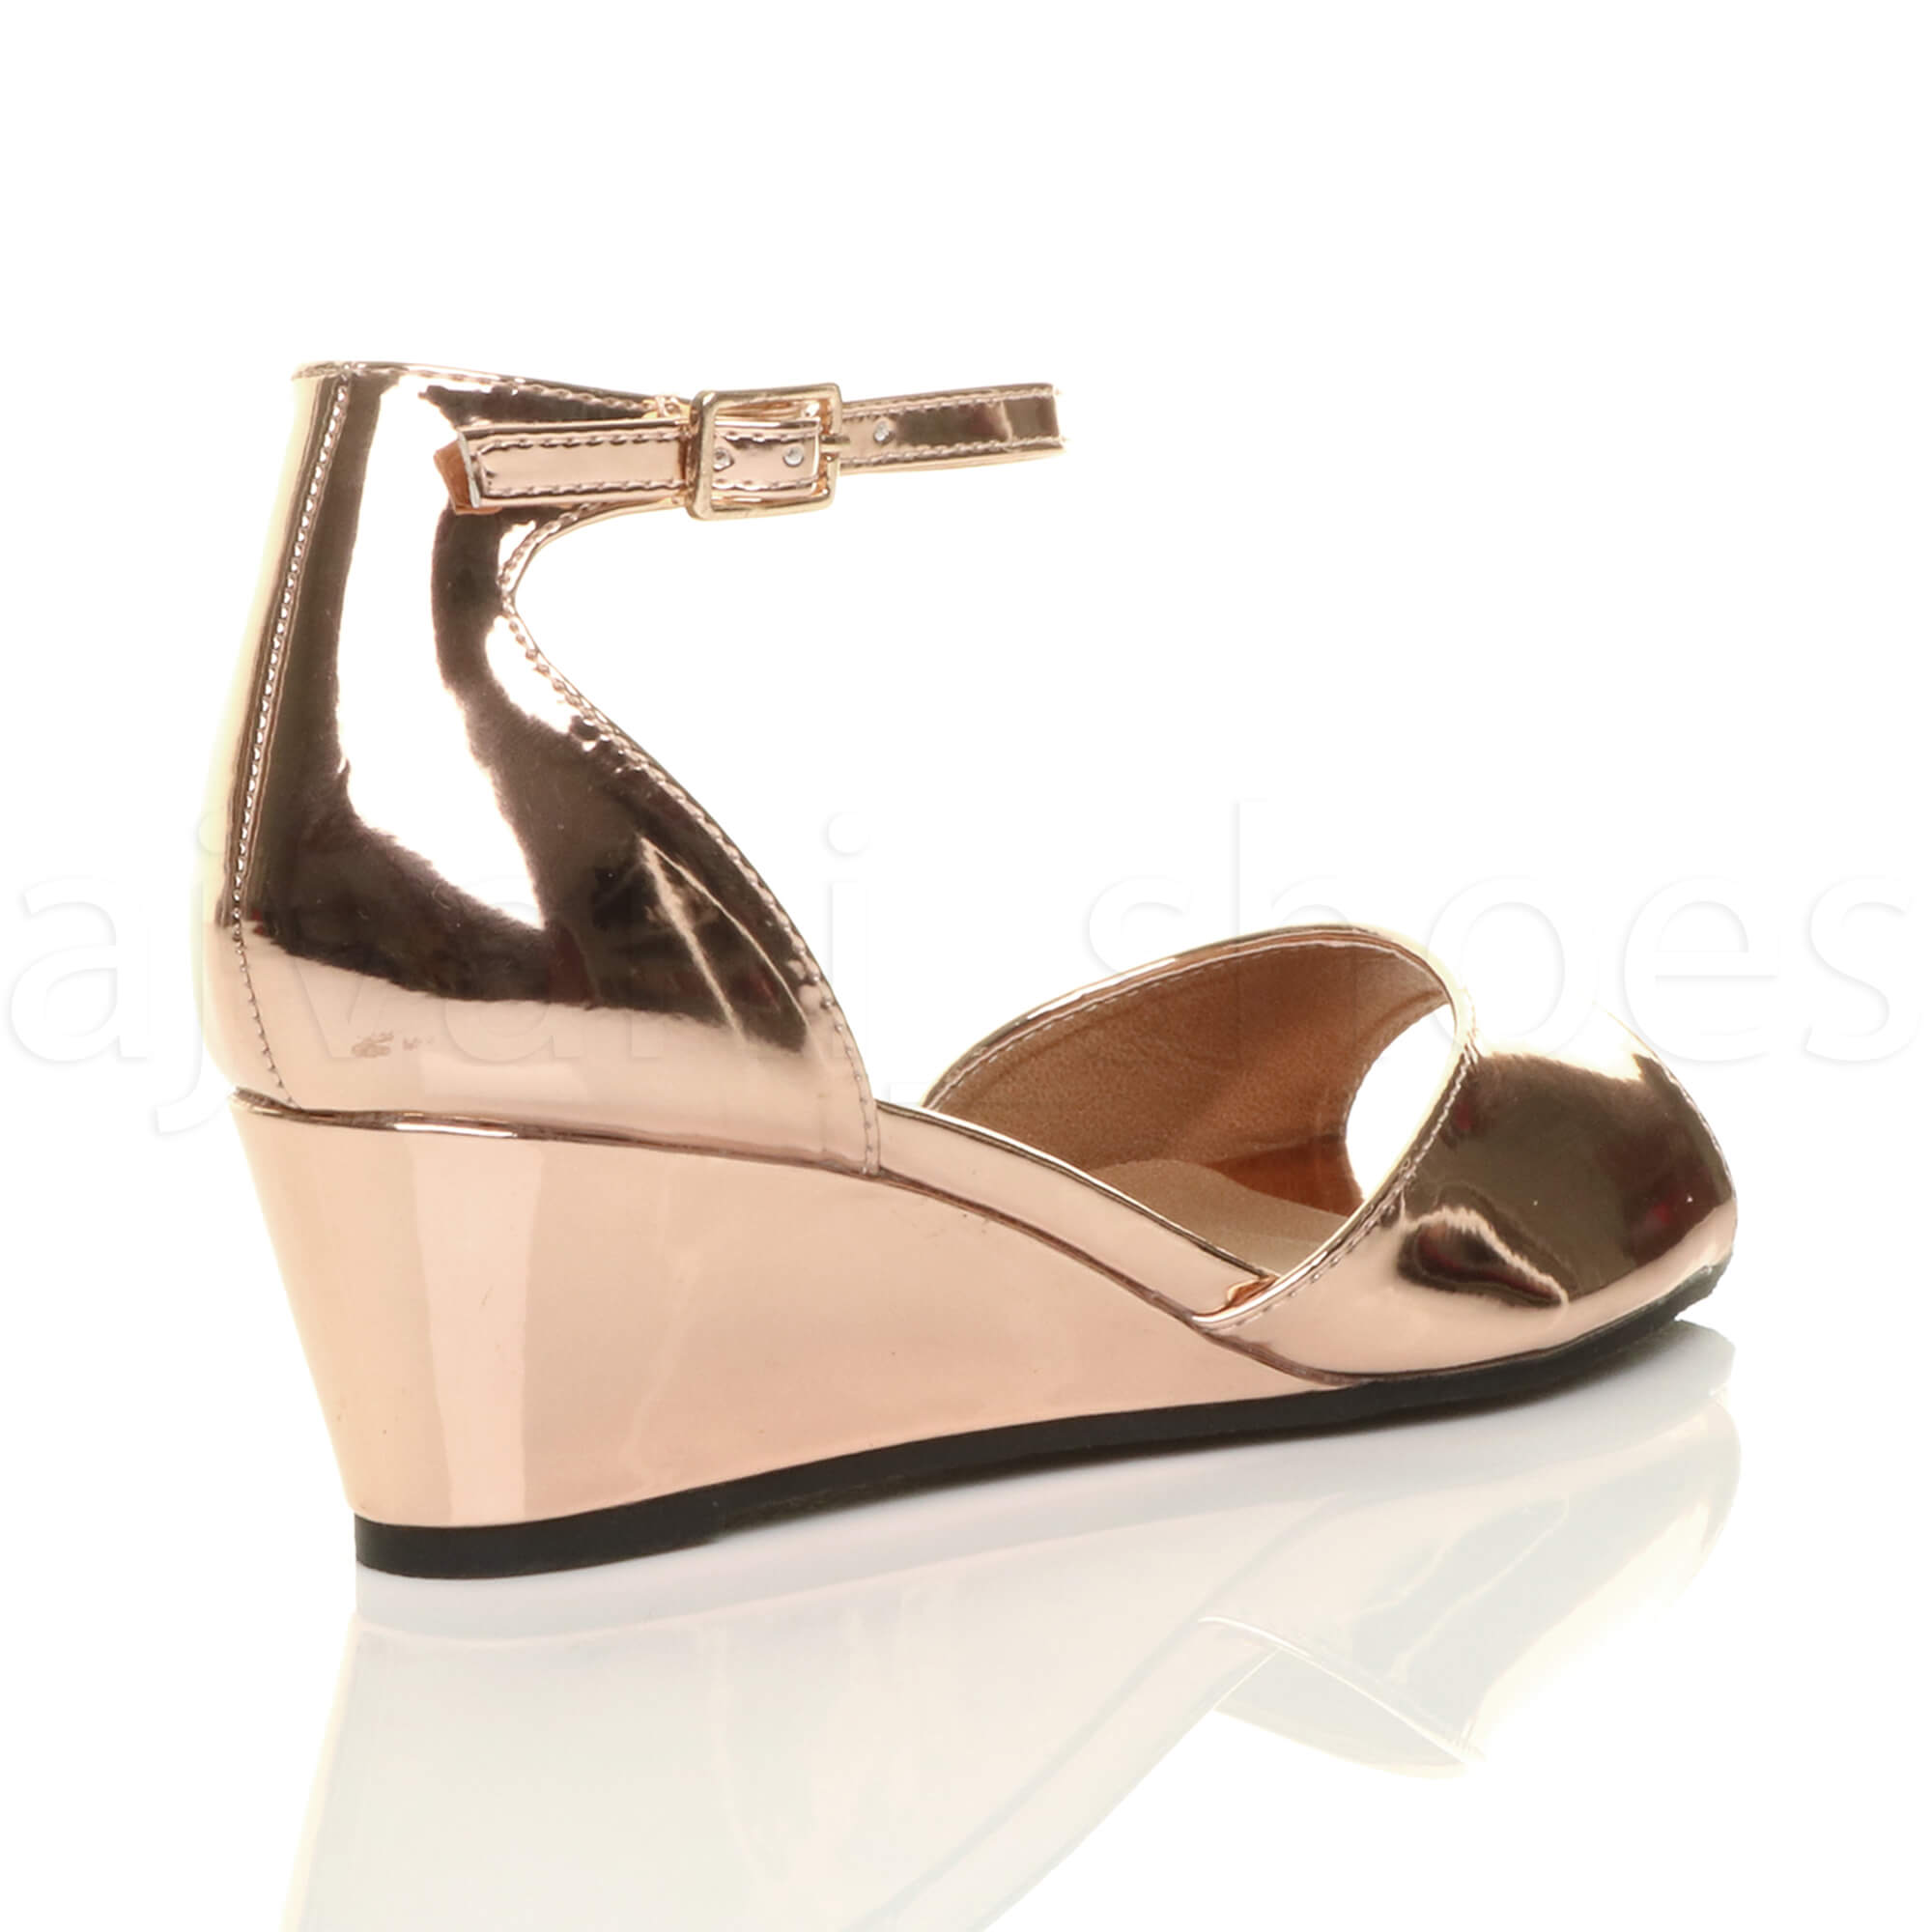 WOMENS-LADIES-LOW-MID-WEDGE-HEEL-ANKLE-STRAP-SMART-CASUAL-EVENING-SANDALS-SIZE thumbnail 133